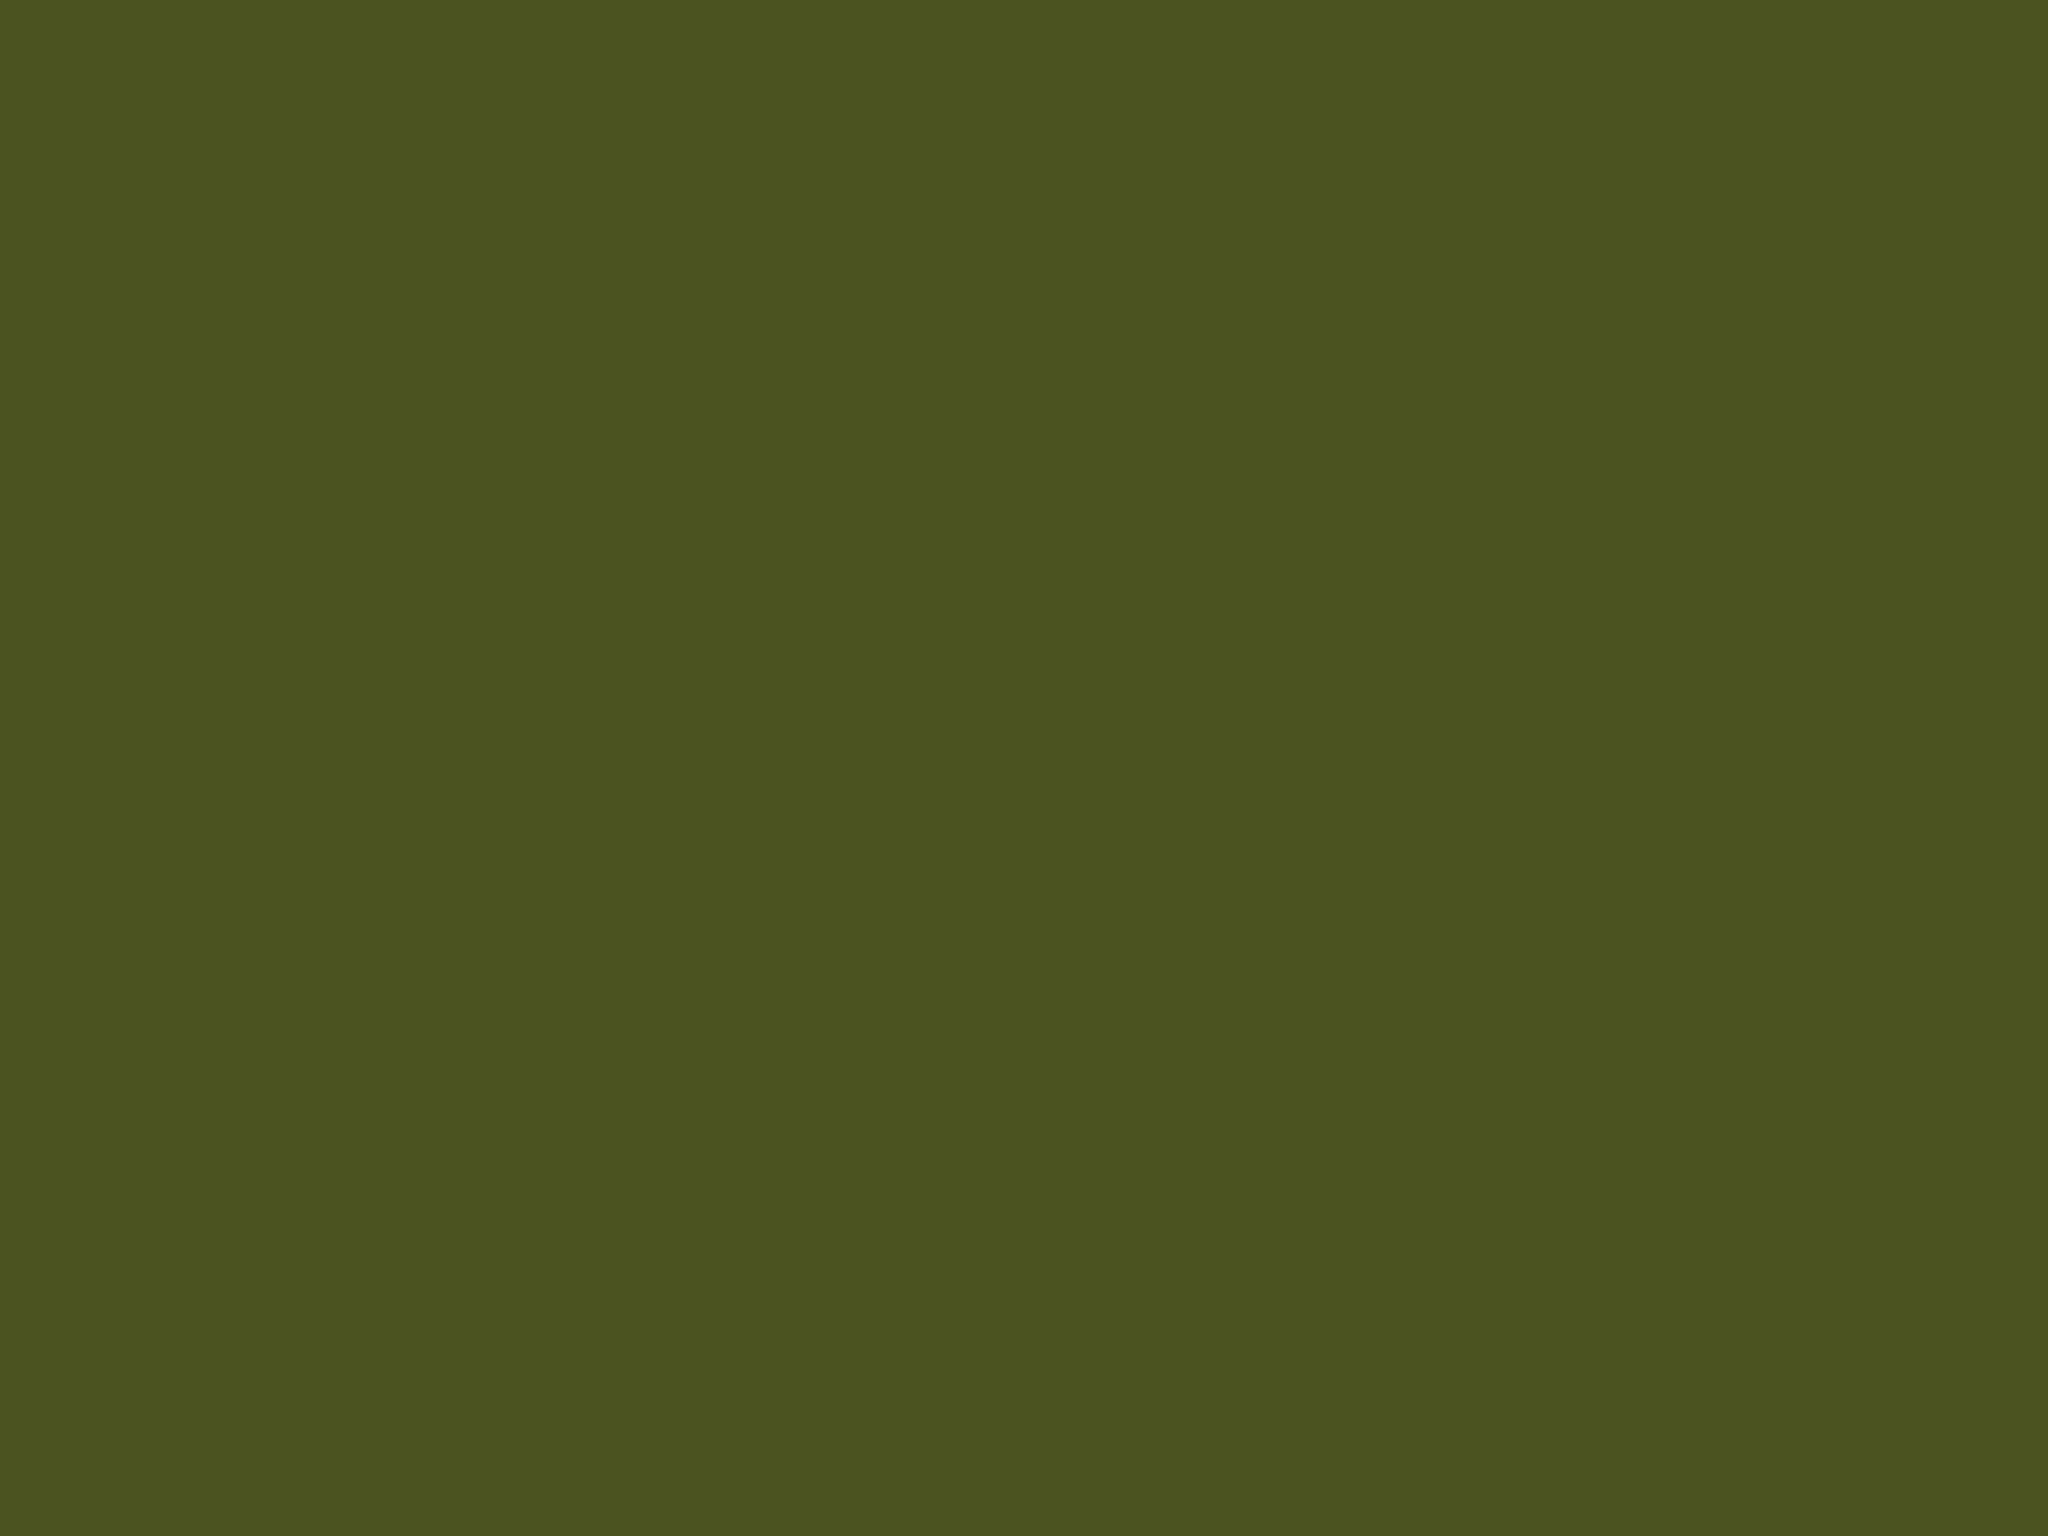 2048x1536 Army Green Solid Color Background